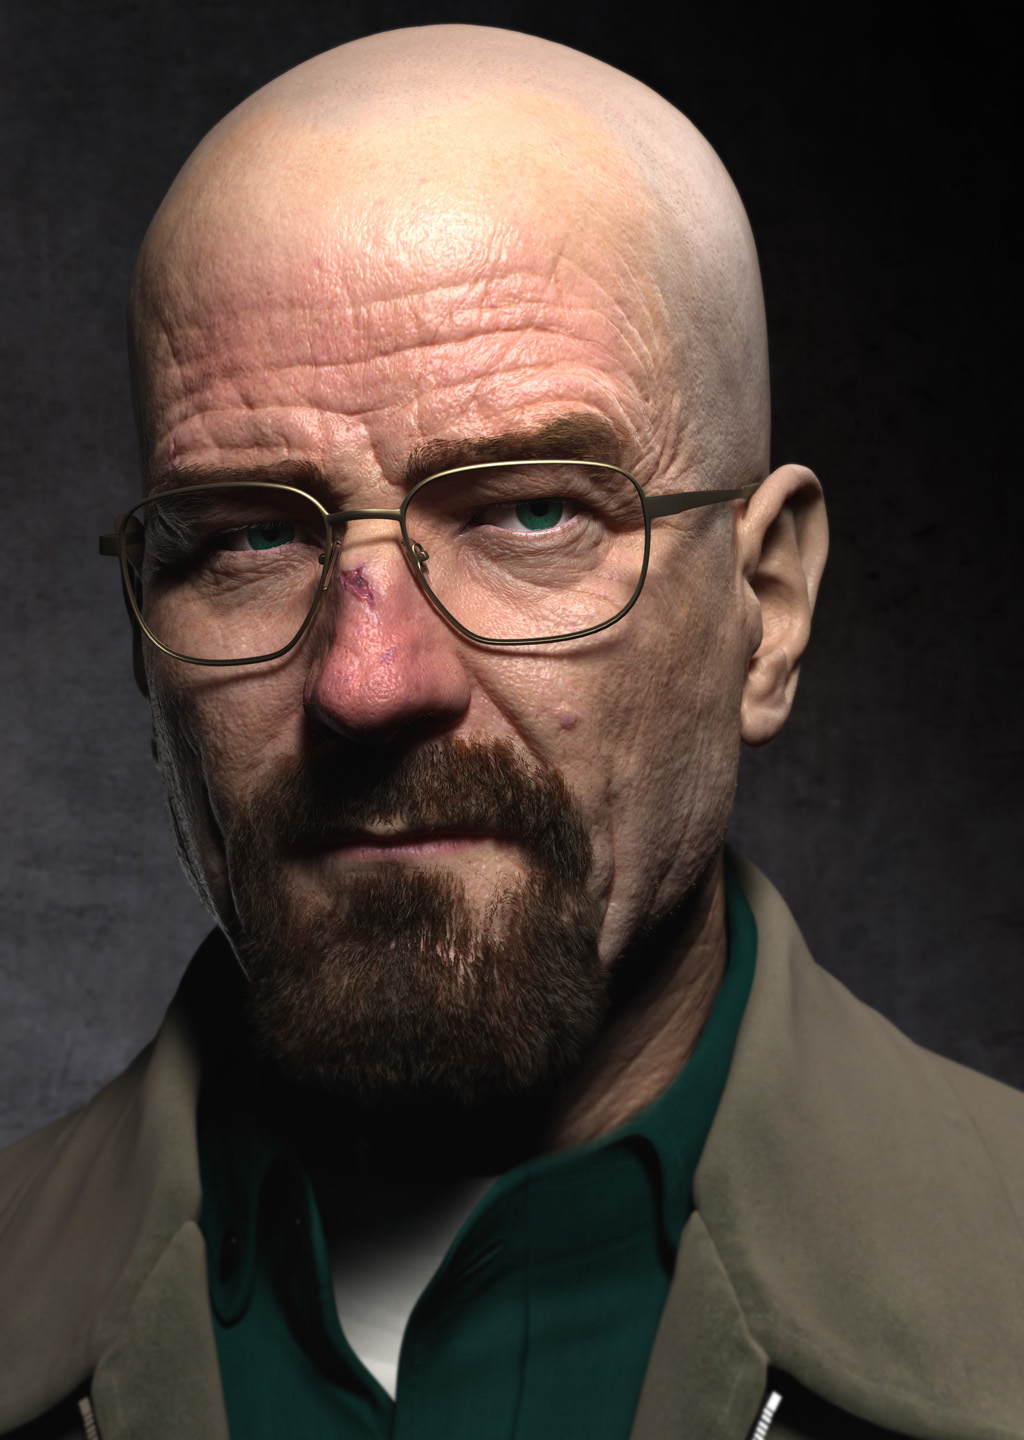 Walter White with a goatee | Image via Reddit